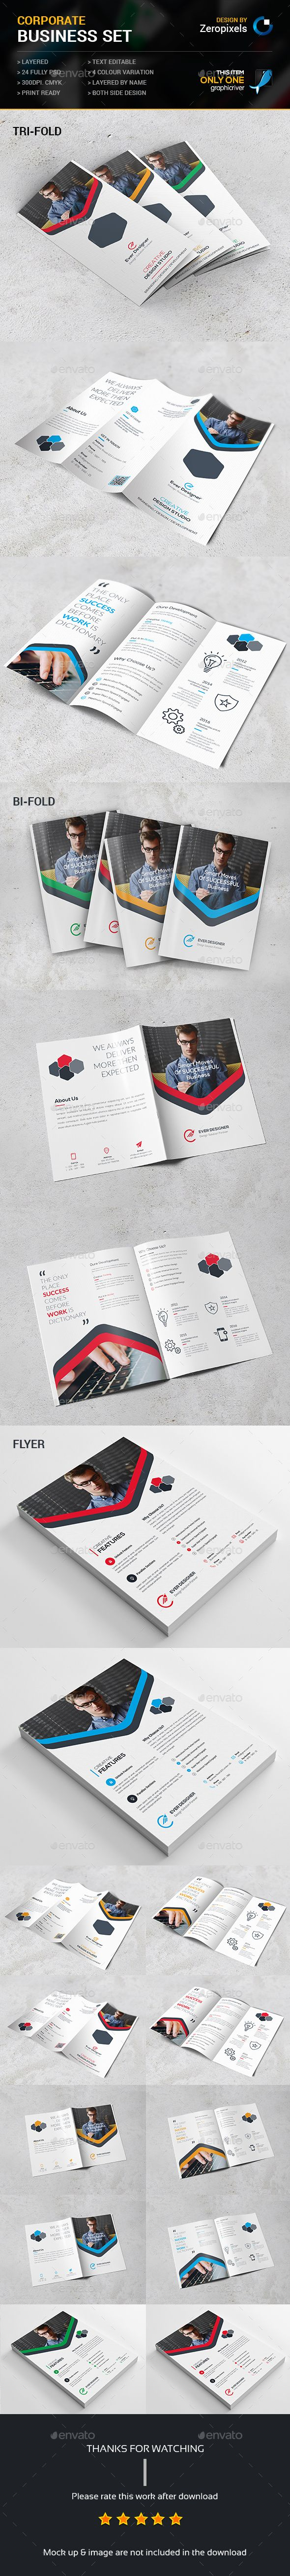 Corporate Business Brochures Set-Flyer, Trifold, Bifold